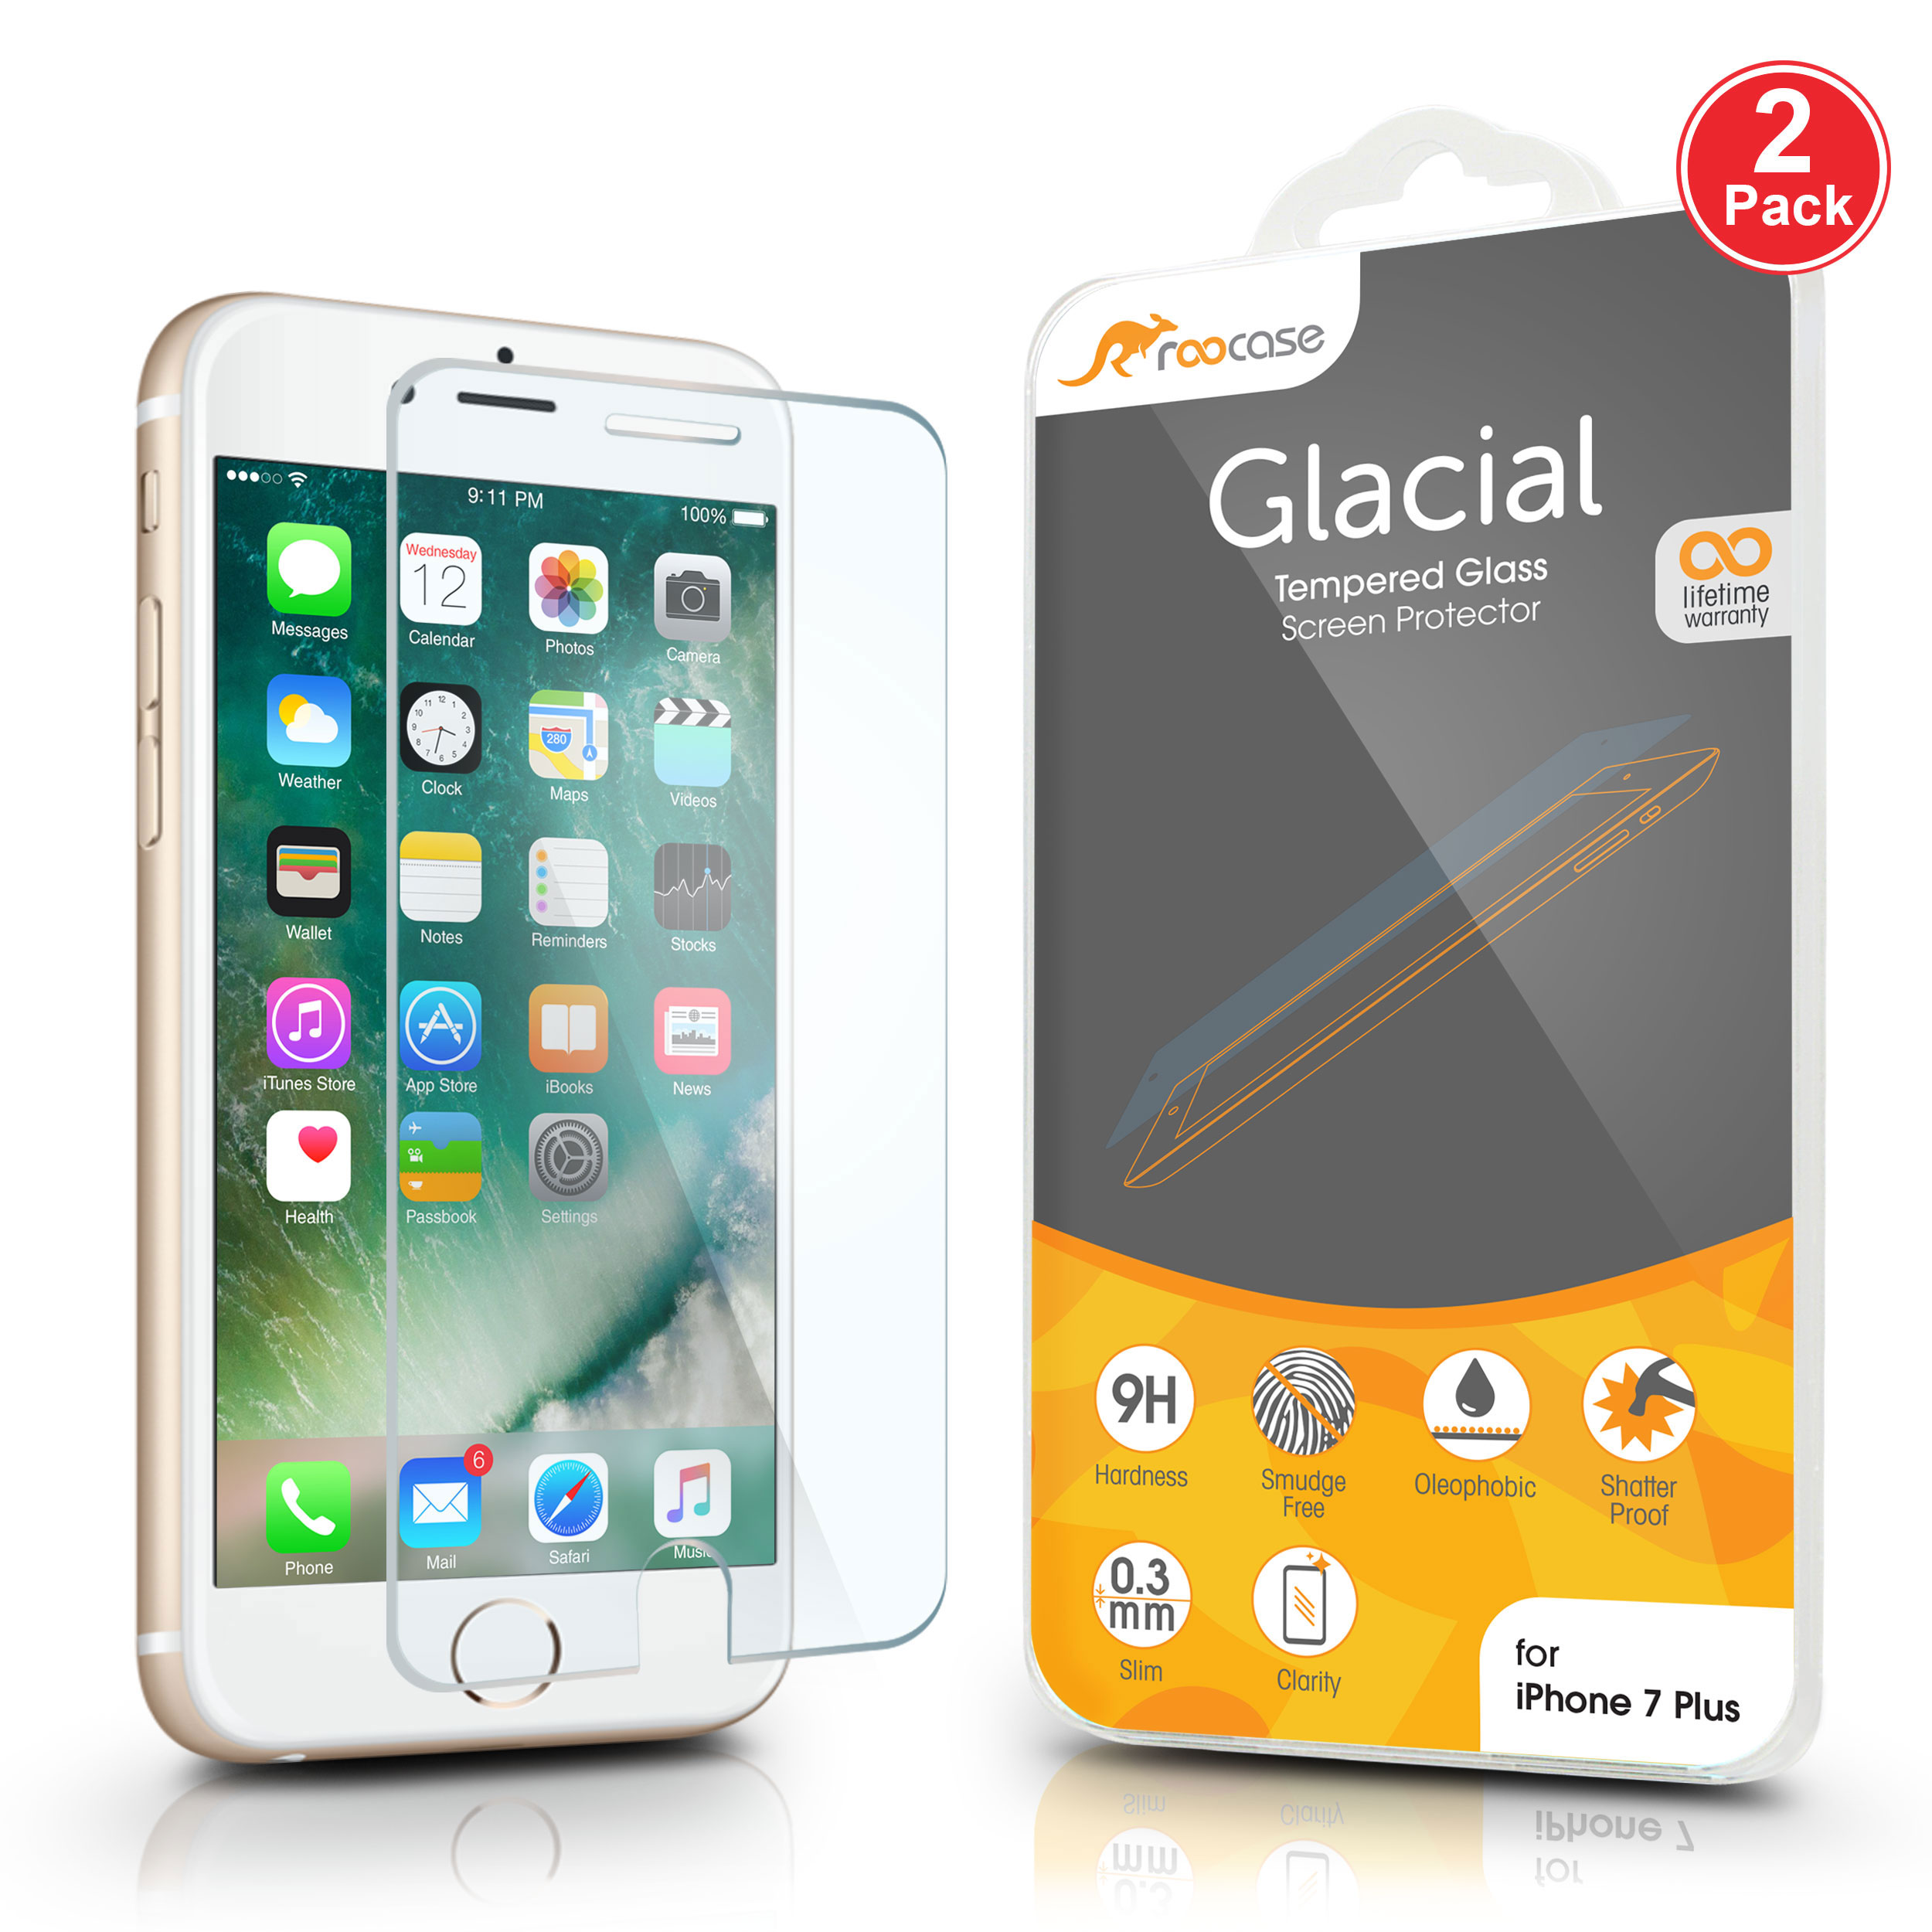 olixar iphone 7 plus screen protector 2 in 1 pack today